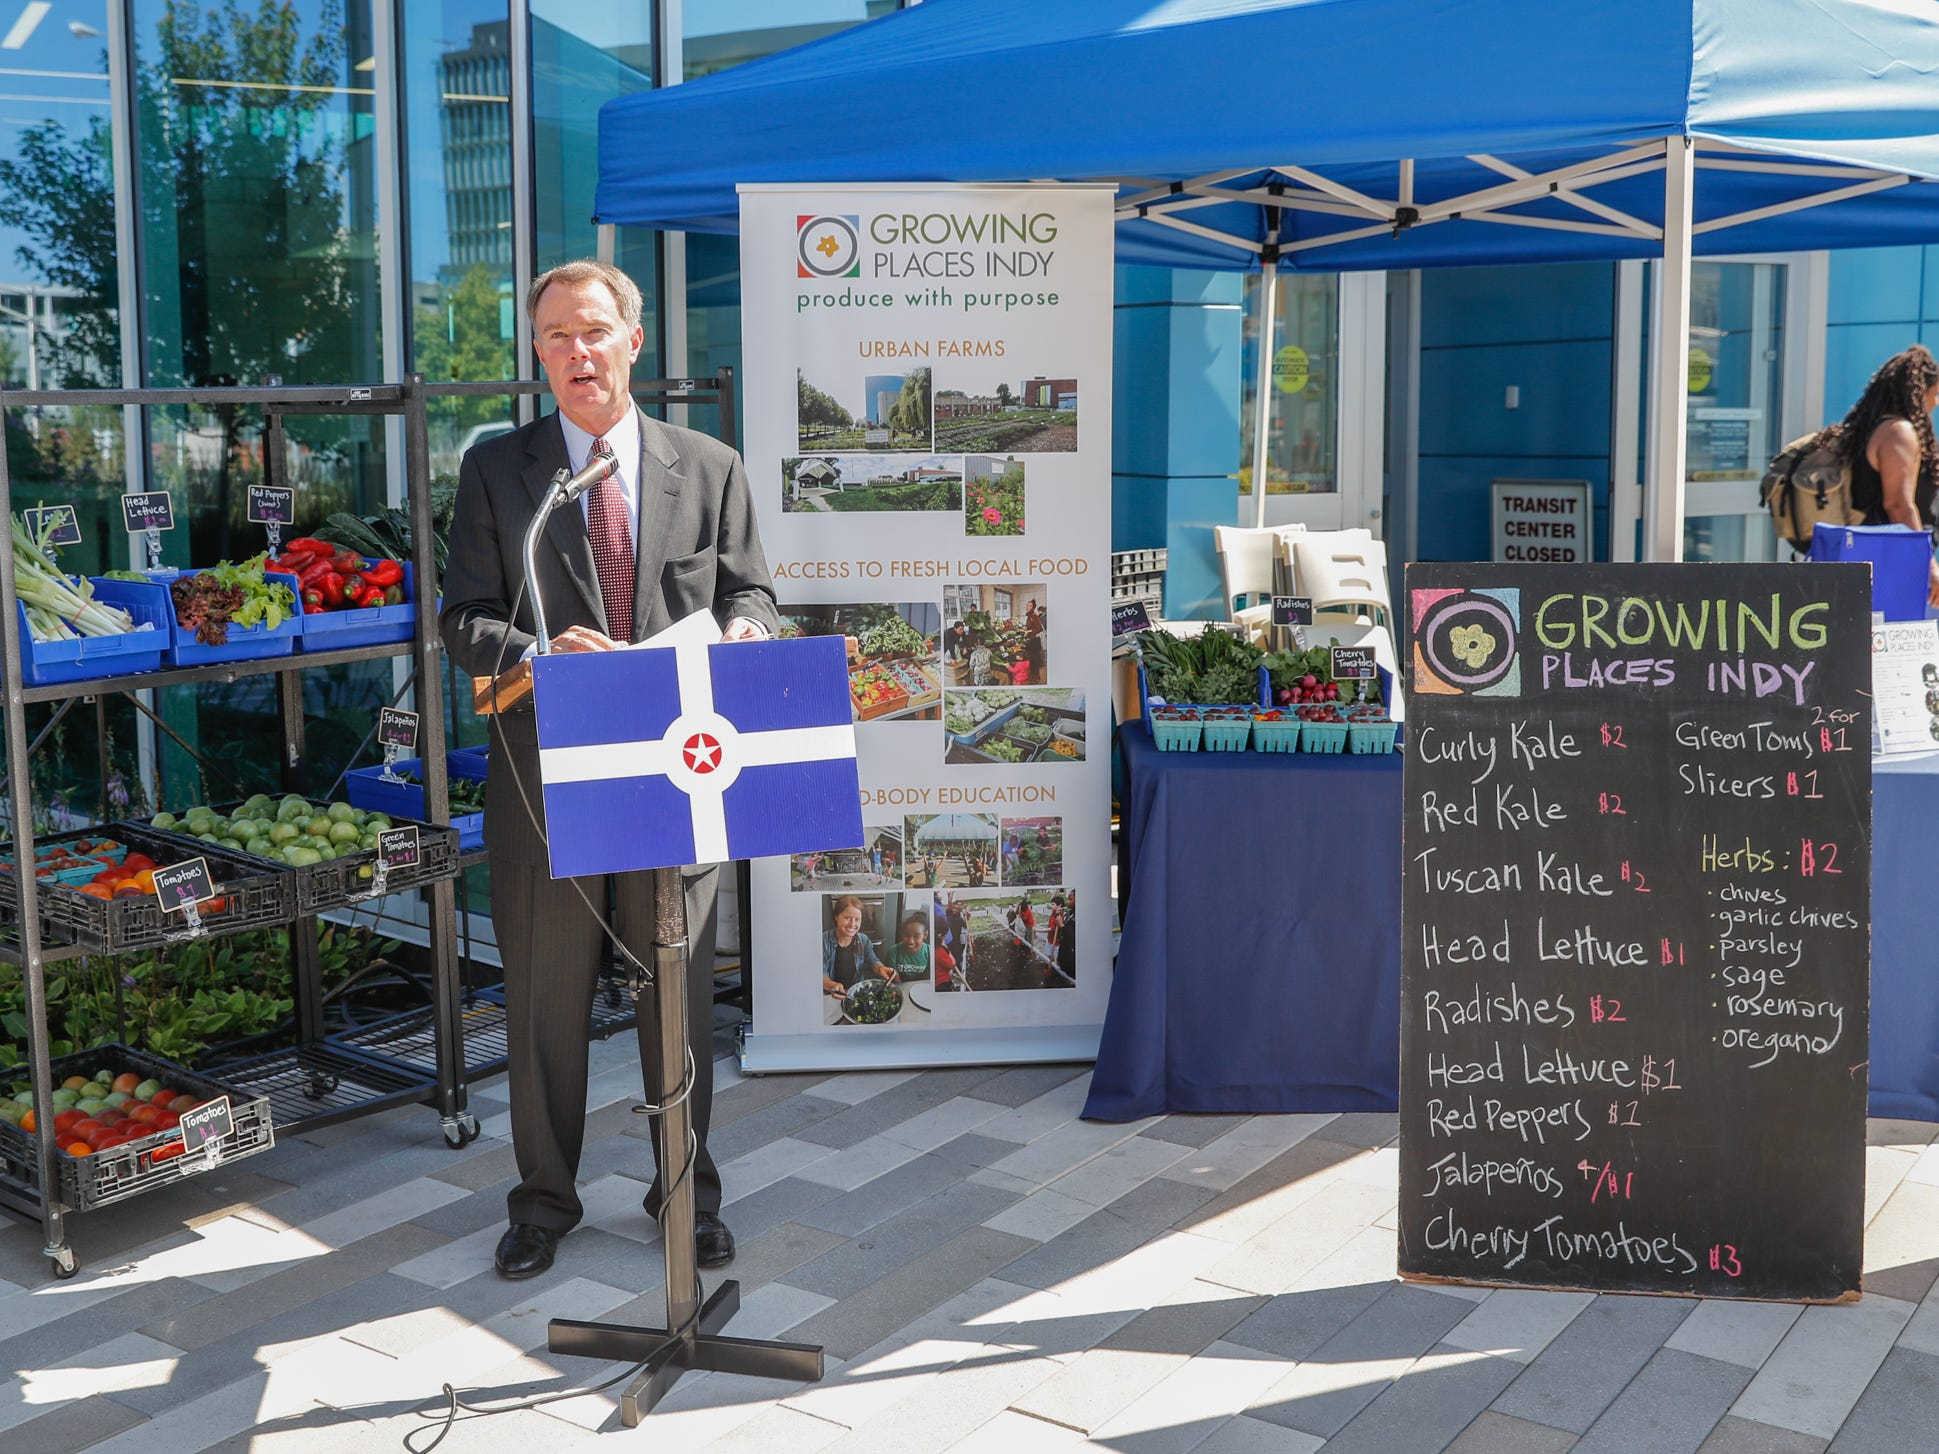 """Indianapolis Mayor Joe Hogsett, in partnership with IndyGo and Growing Places Indy, launches the """"Food in Transit"""" program at the Julia M. Carson Transit Center on Friday, Sept. 14, 2018. Visitors to the Transit Center can purchase produce every Friday from 3 p.m. to 6 p.m. through October 26."""